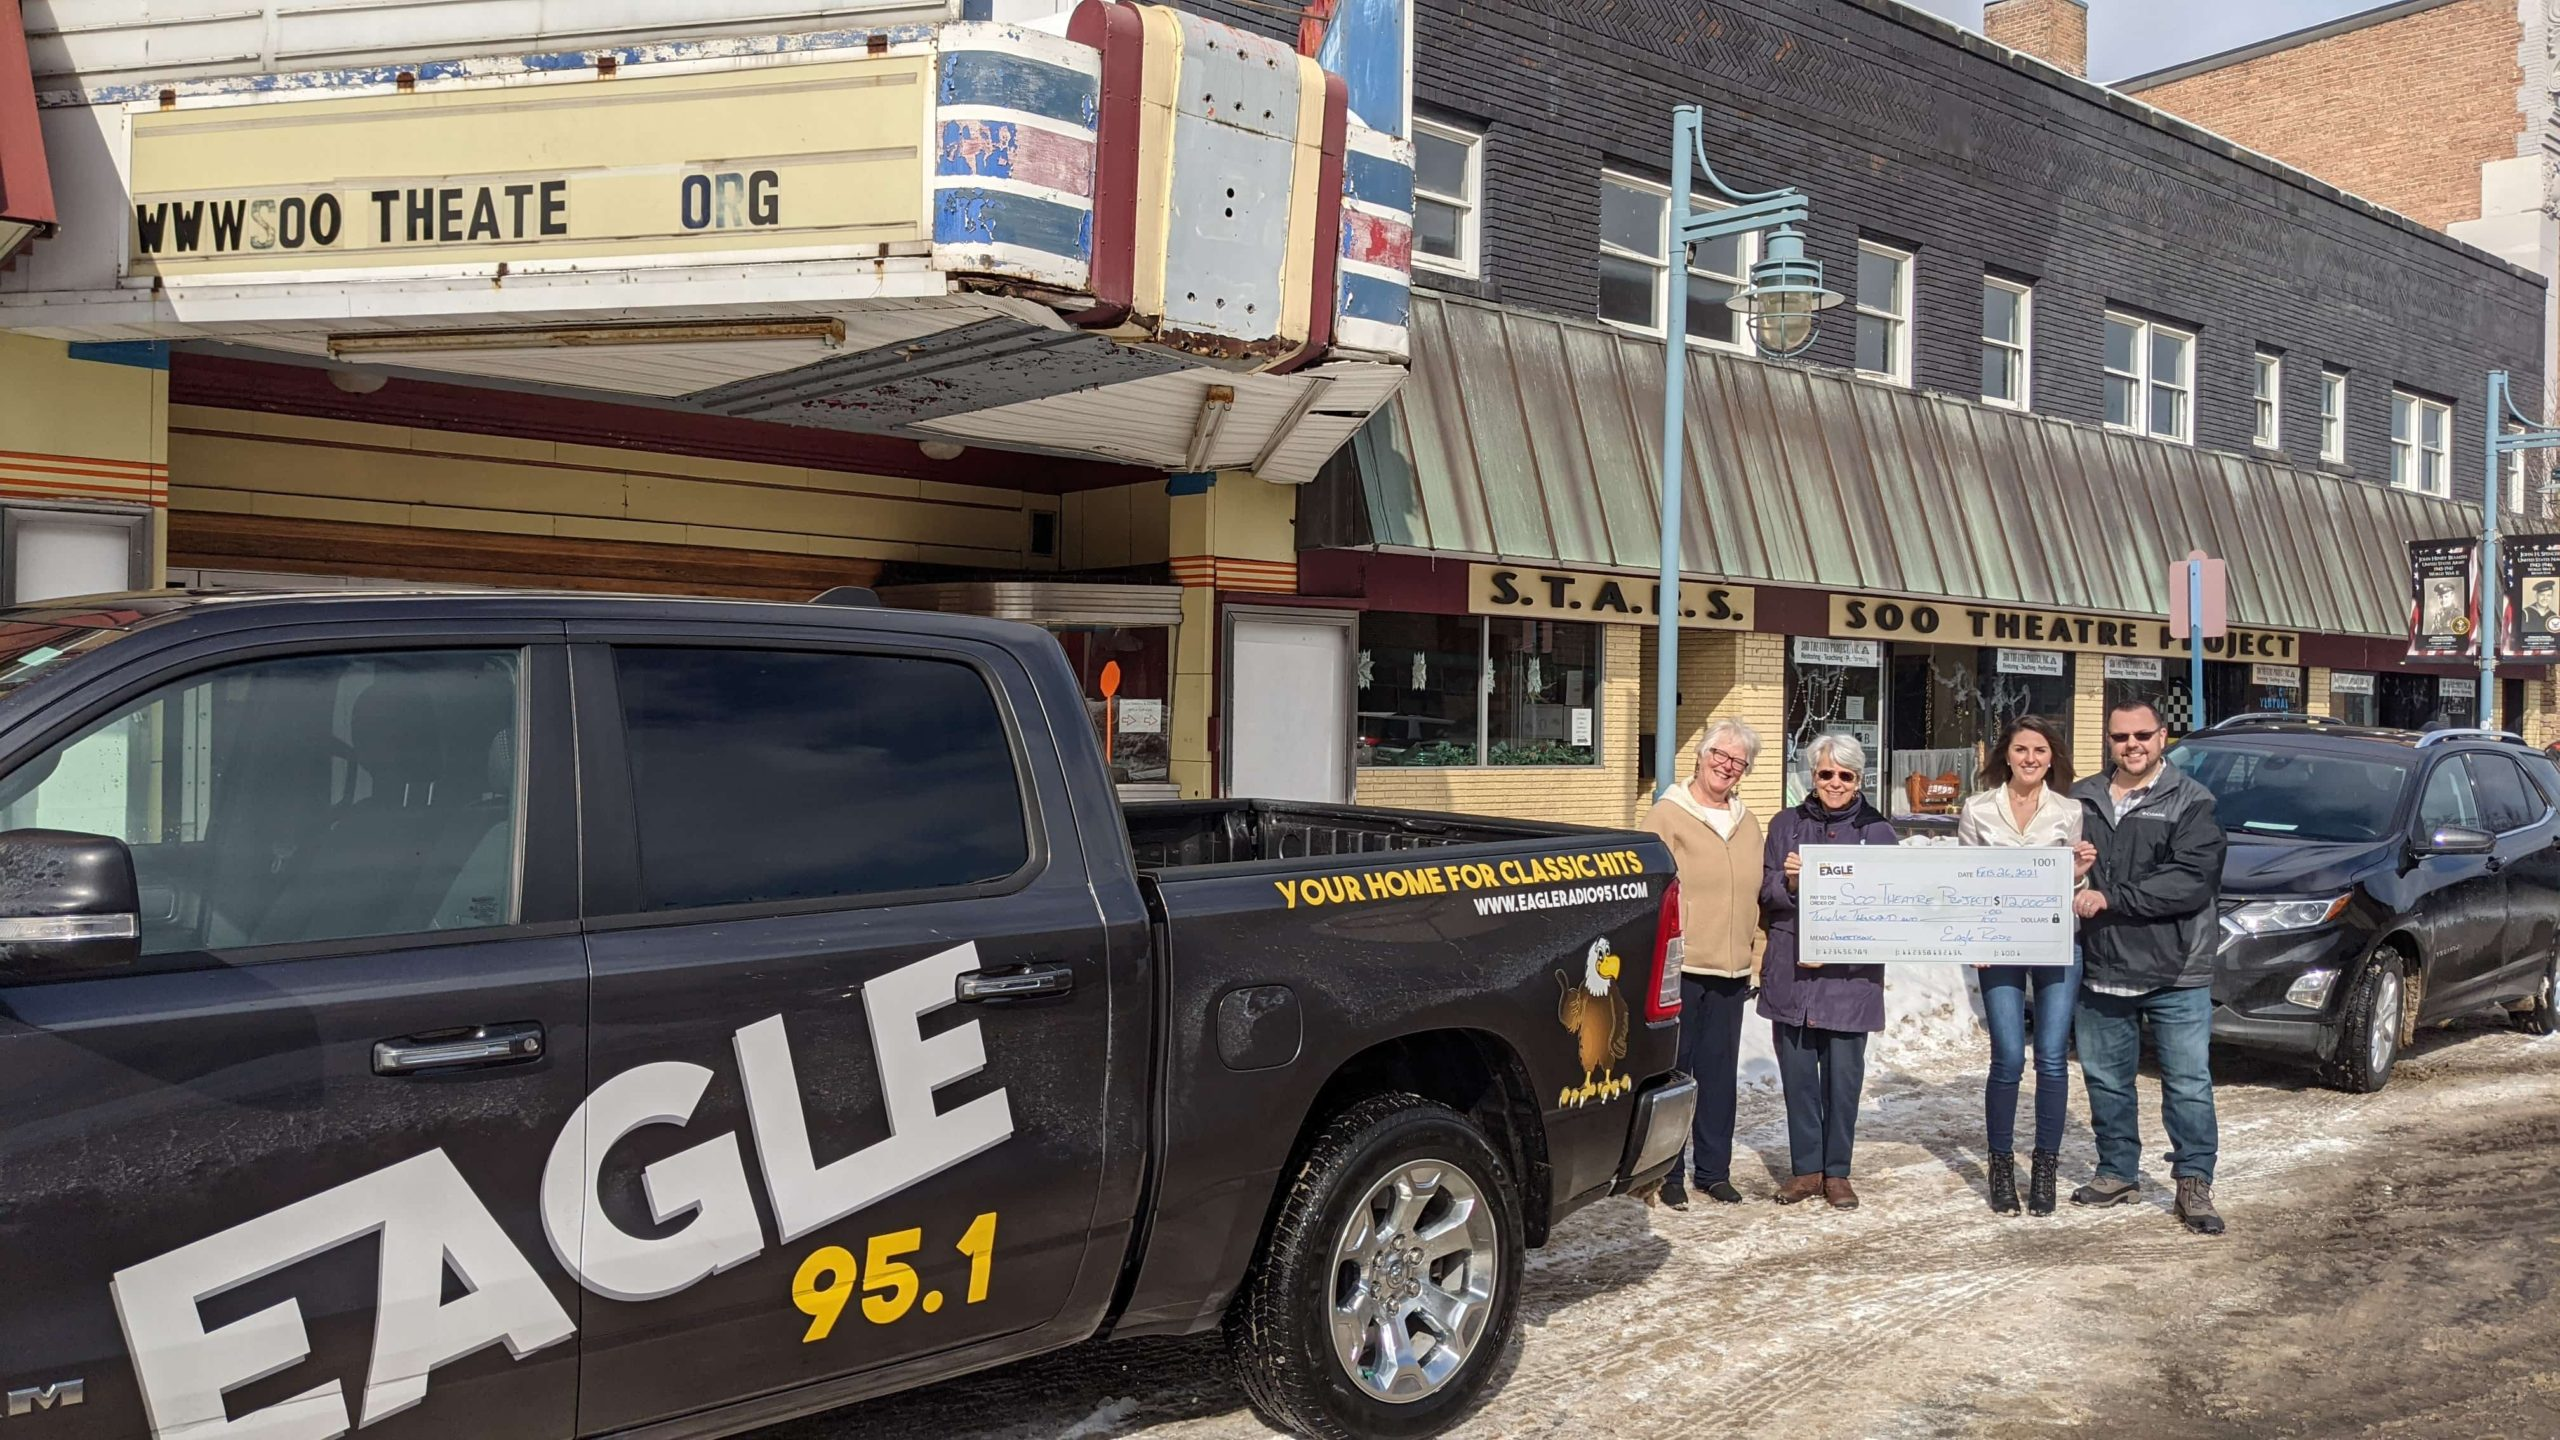 Eagle Radio 95.1 Pledges $12,000 to Soo Theatre Exterior Restoration Capital Campaign